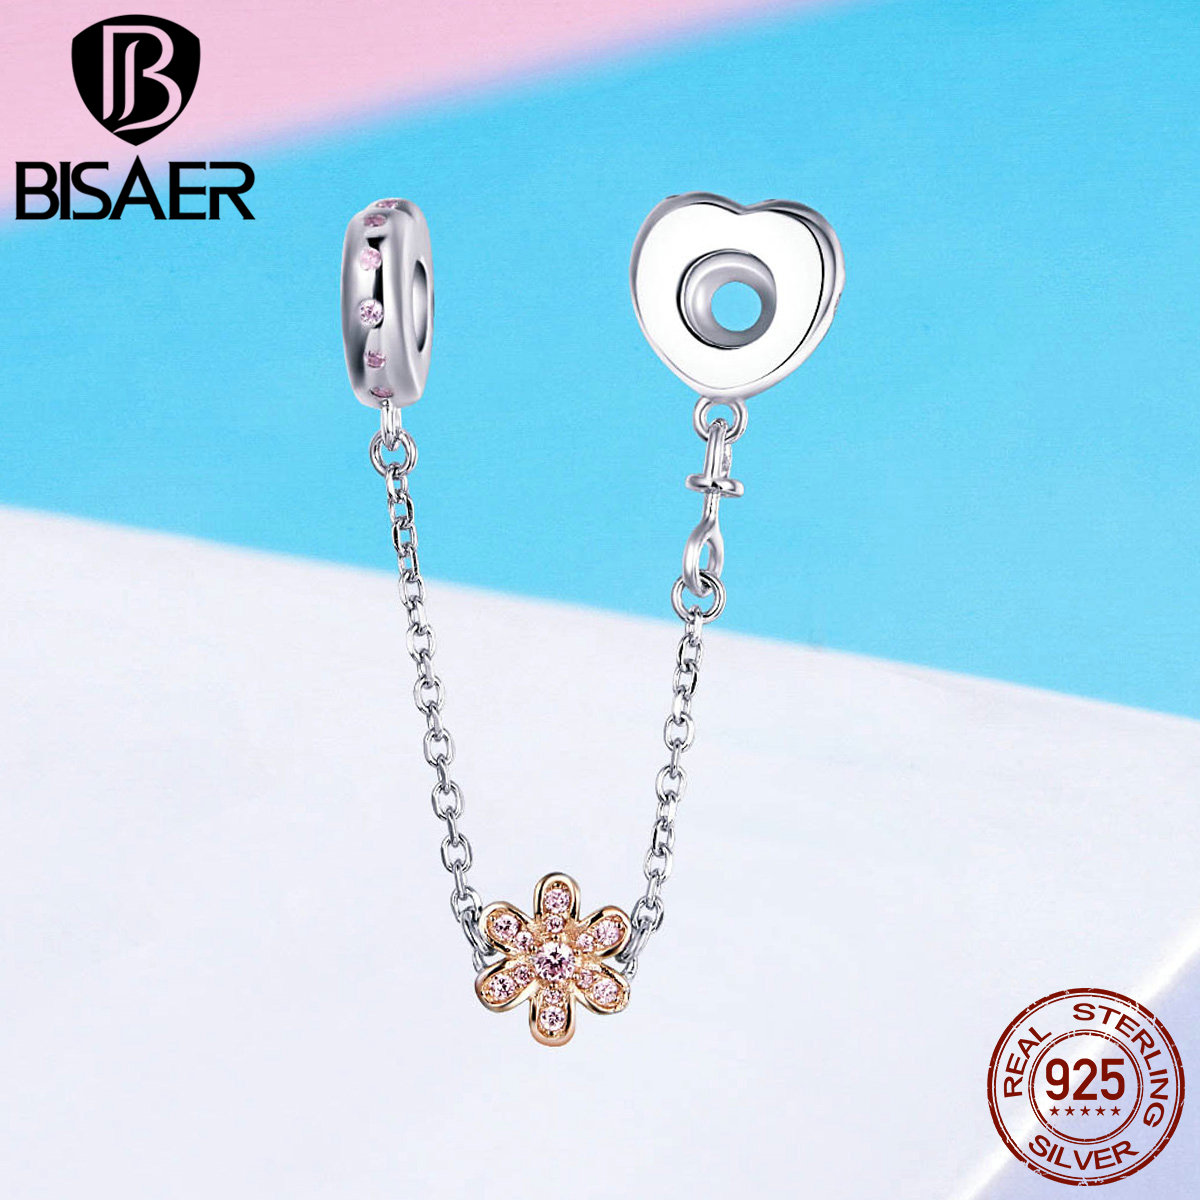 BISAER 925 Sterling Silver Love Heart Flower Safety Chain Charms fit for Bracelets & Bangles Sterling Silver Jewelry ECC1113BISAER 925 Sterling Silver Love Heart Flower Safety Chain Charms fit for Bracelets & Bangles Sterling Silver Jewelry ECC1113